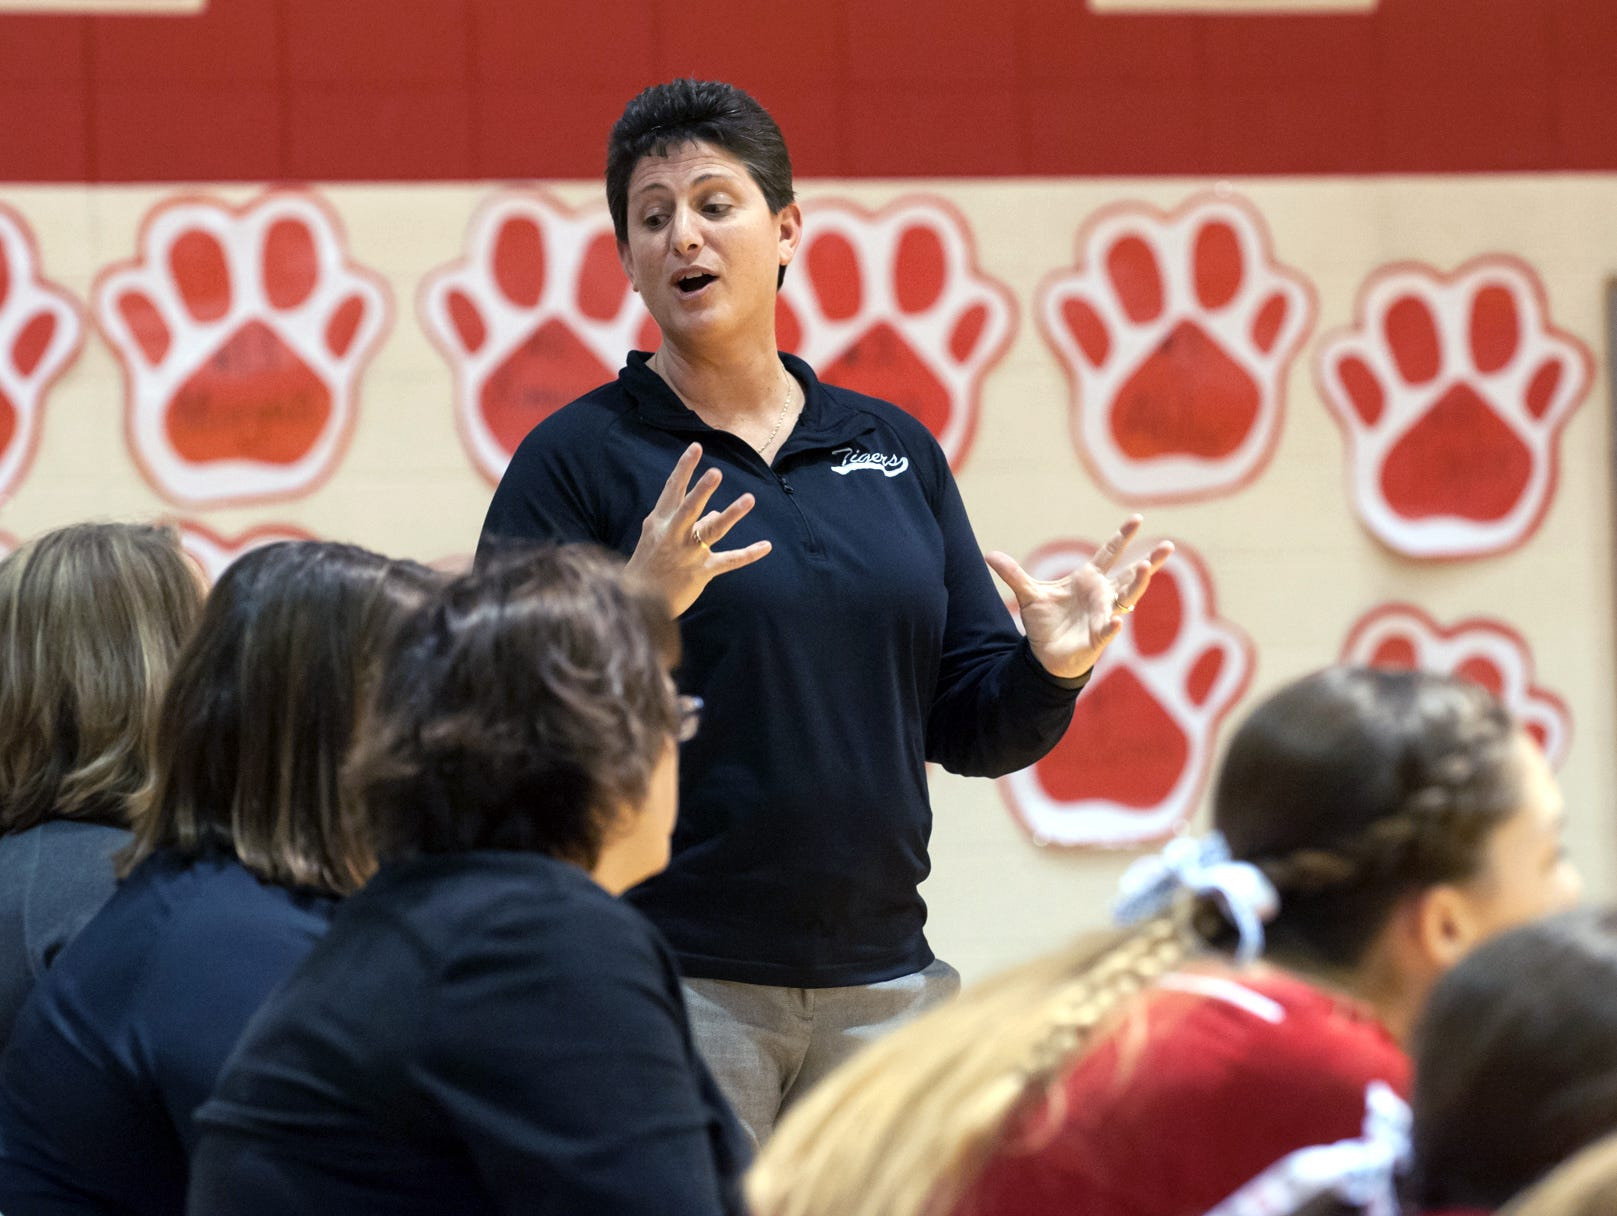 St. Philip head coach Vicky Groat talks to the coaches during the first match.